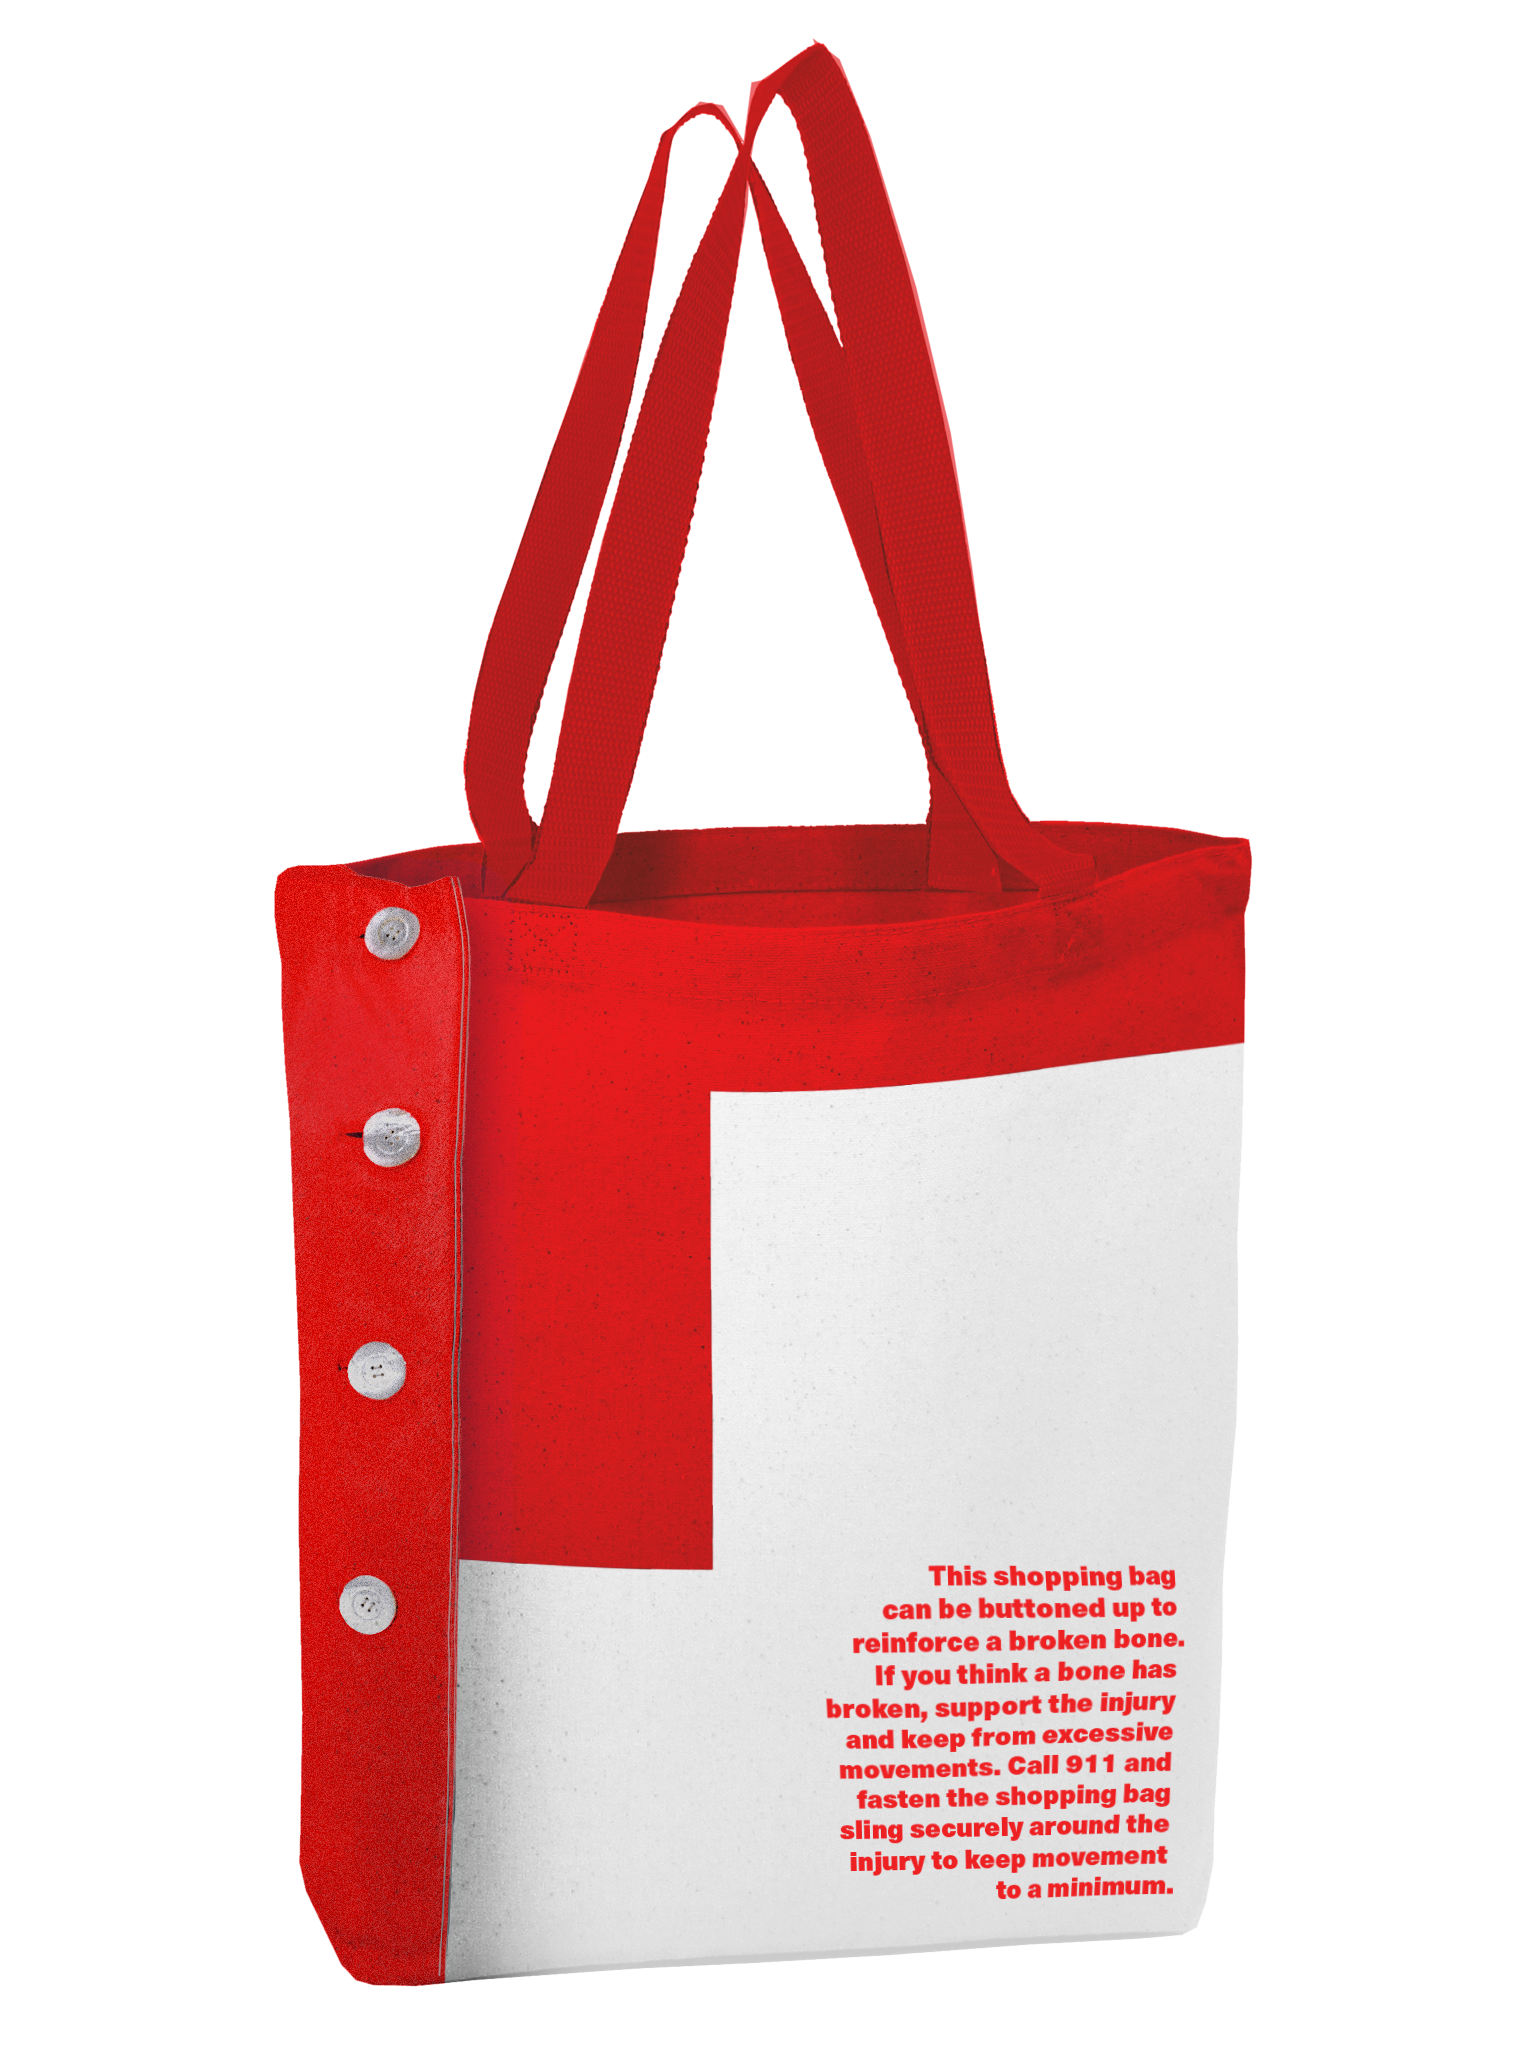 Grocery BagArm Sling. - It can convert into a sling for breaks and sprains.